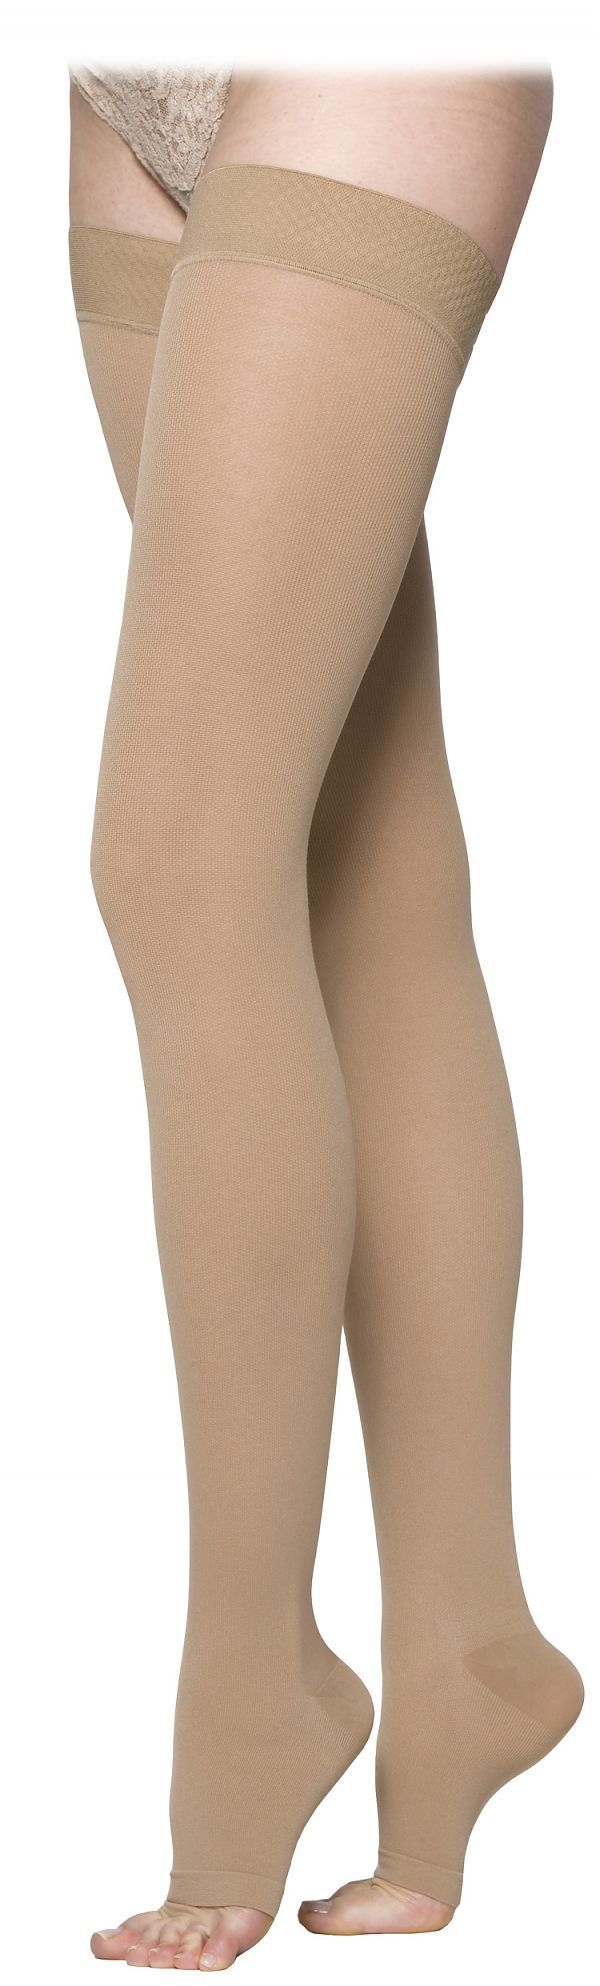 SIGVARIS COTTON 230 Open Toe Thigh High 20 30mmHg